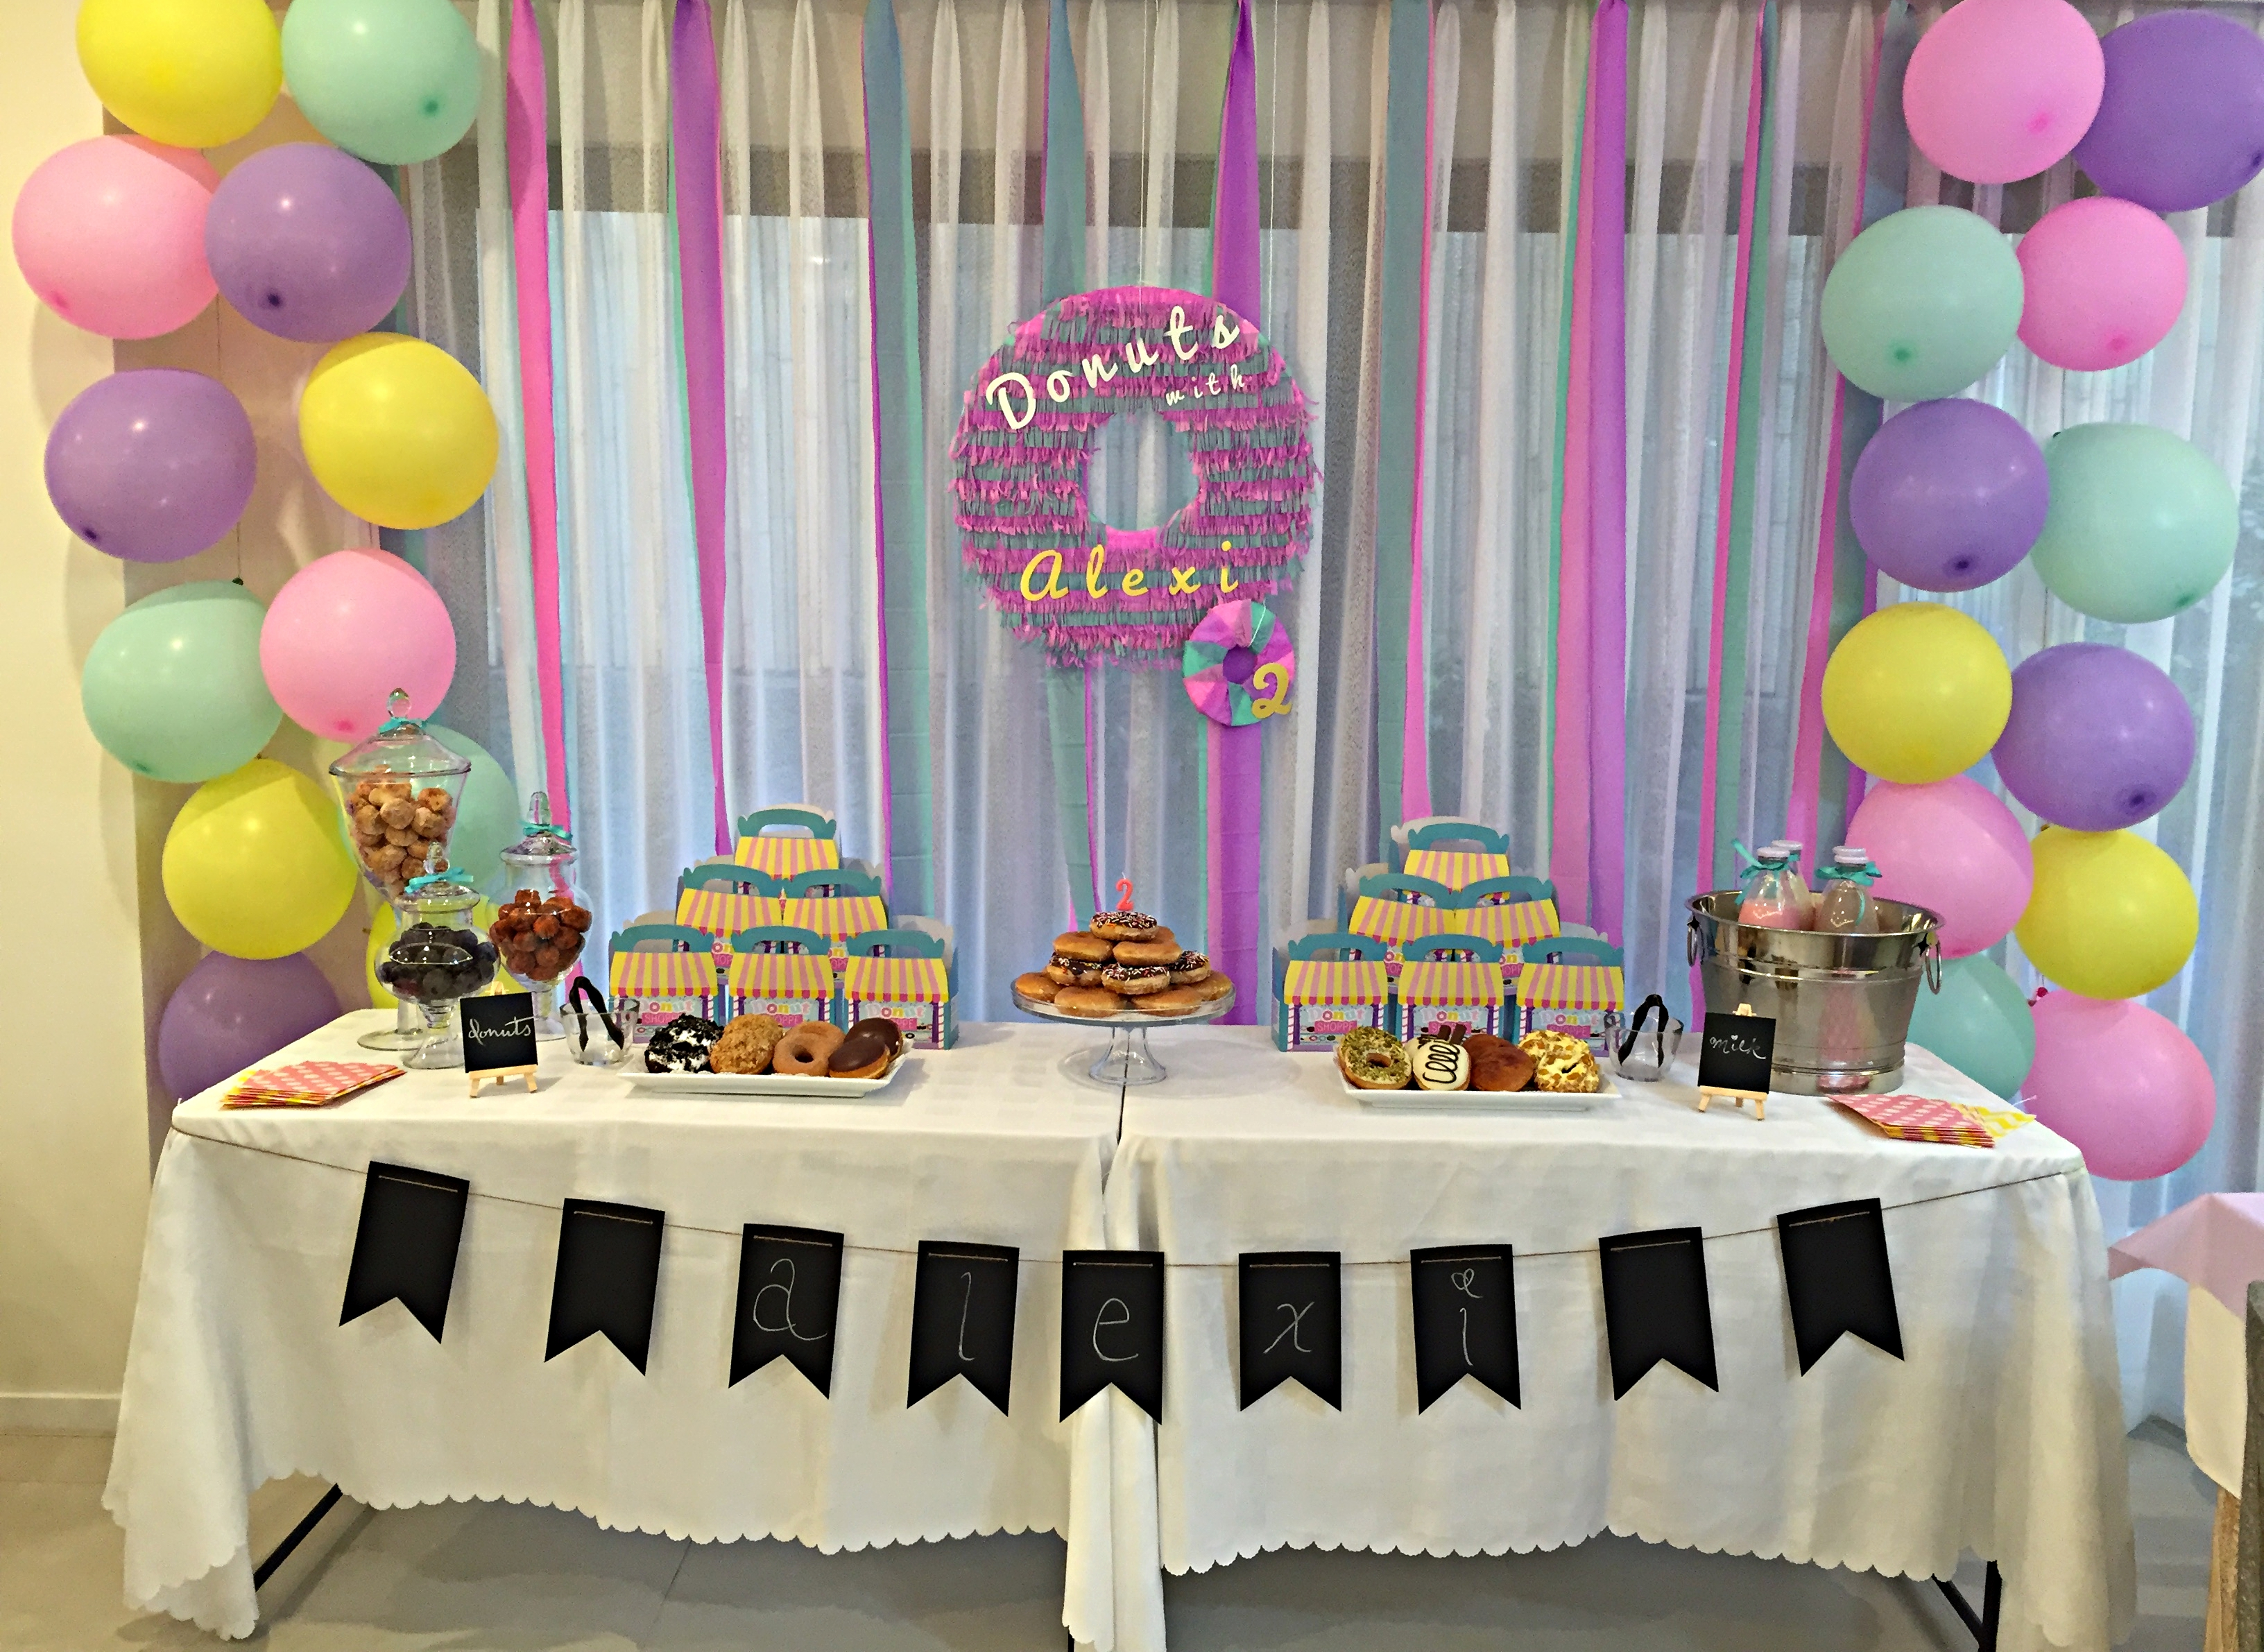 Homemade Parties DIY Party _ Donut Party _ Alexi08